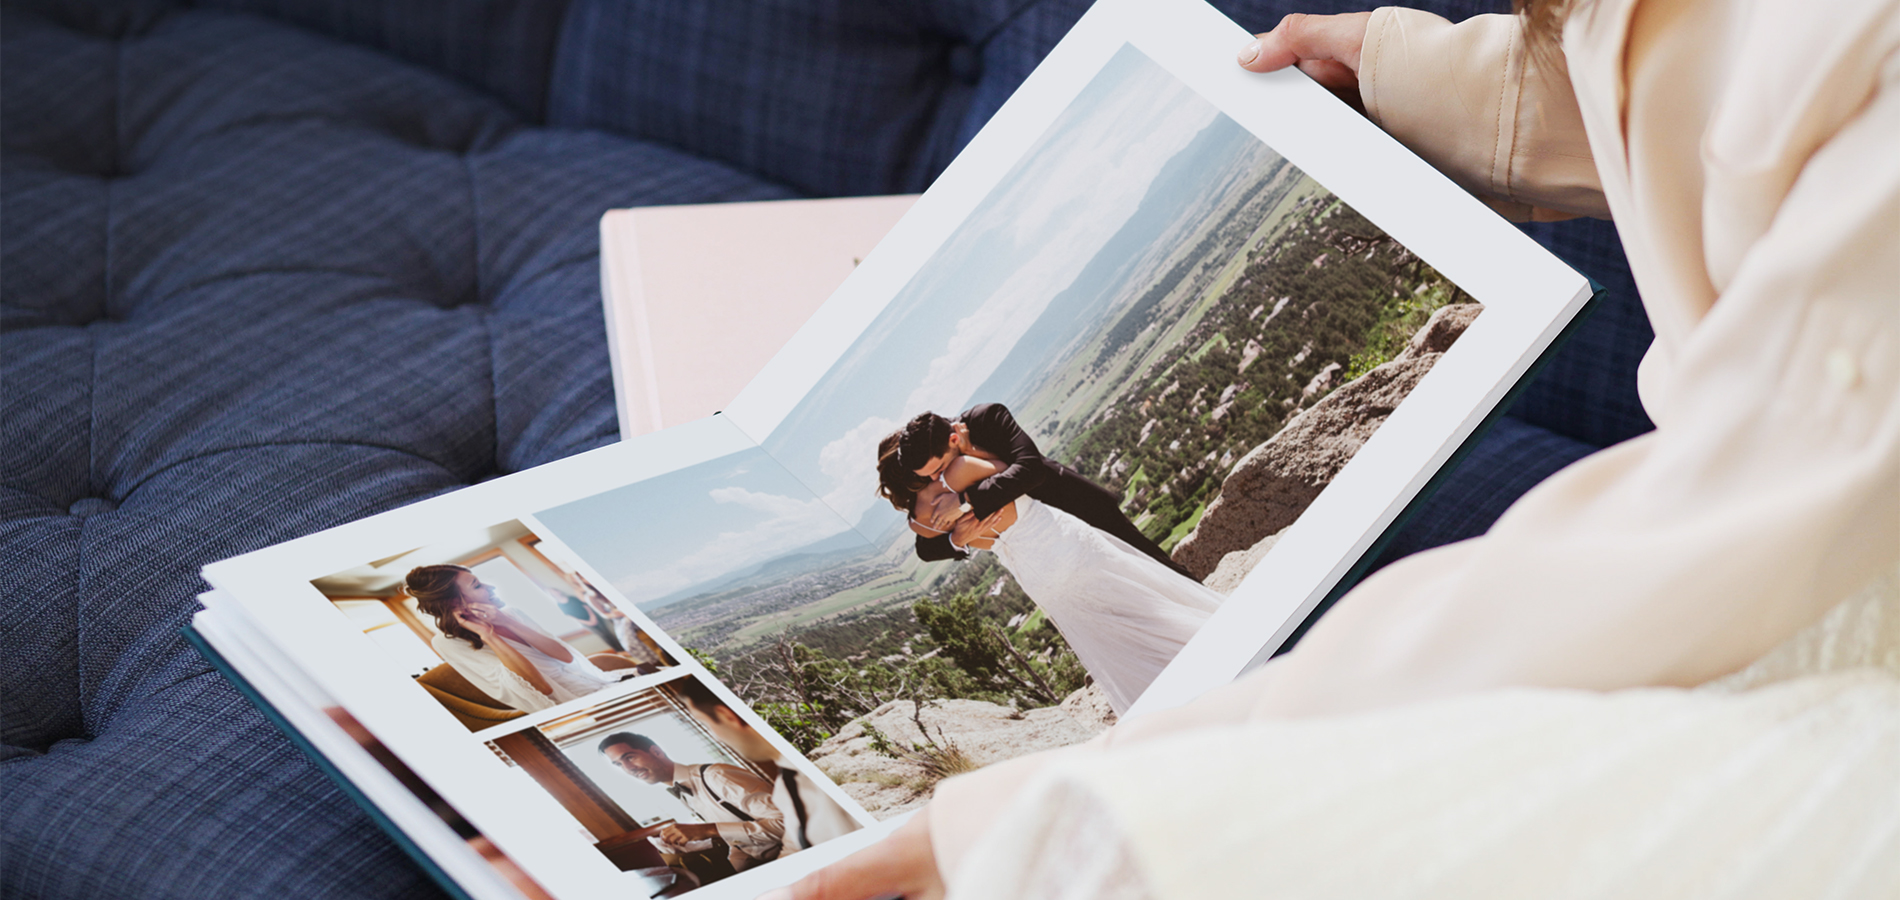 hands holding opened wedding album full of photo book layout ideas